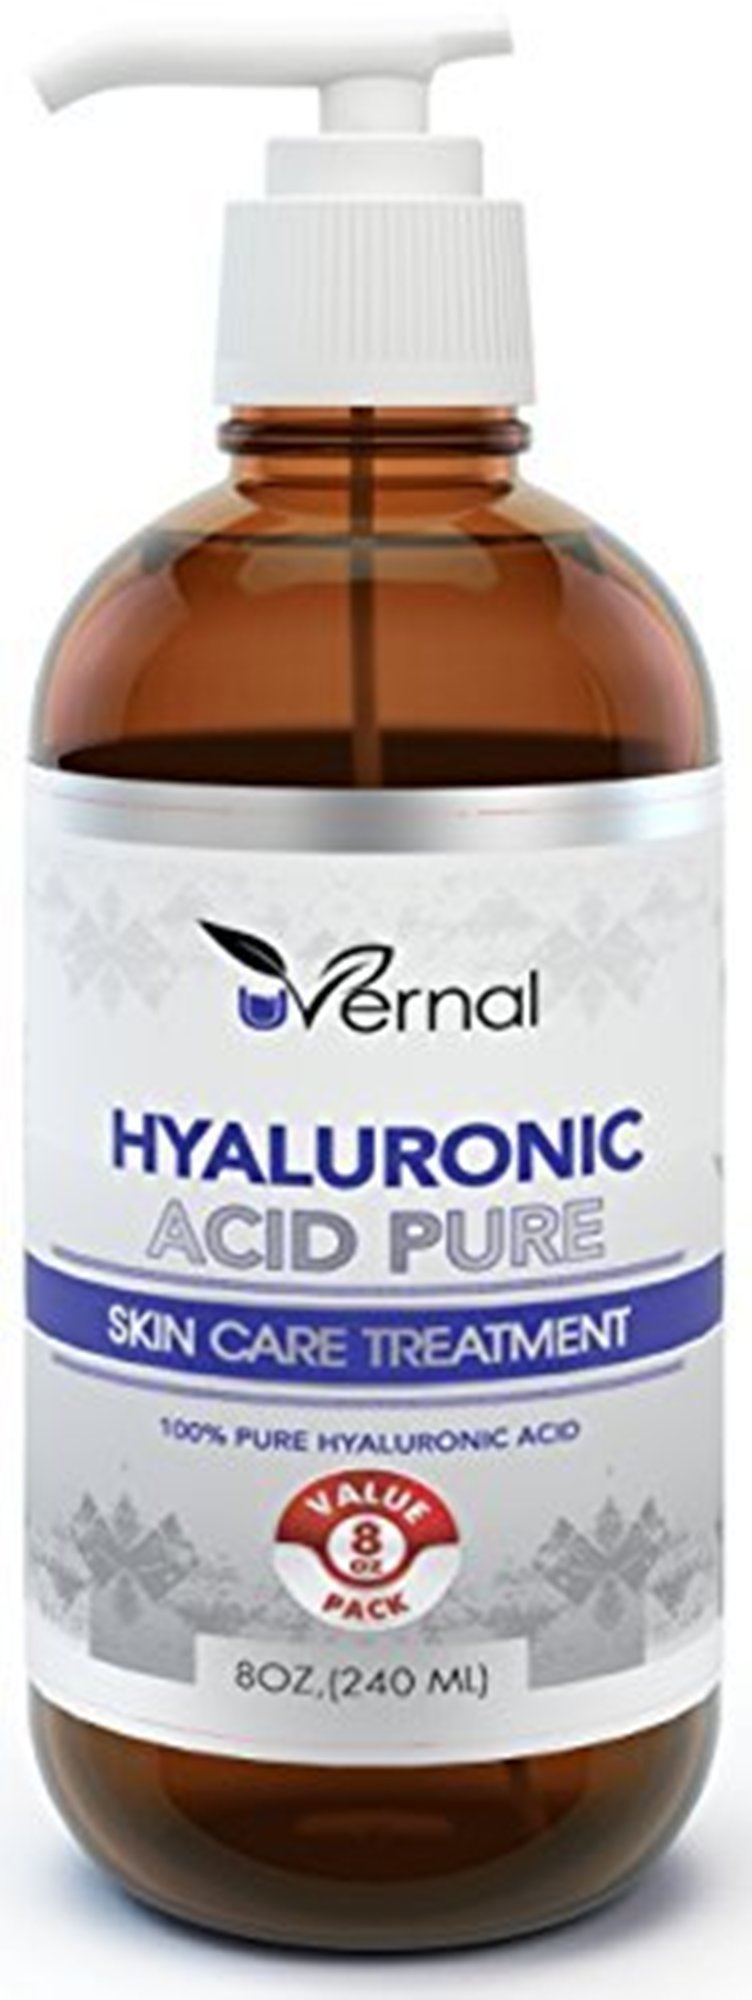 Hyaluronic Acid for Skin - 100% Pure Medical Quality Clinical Strength Formula - Anti aging formula (8 oz) by InstaSkincare